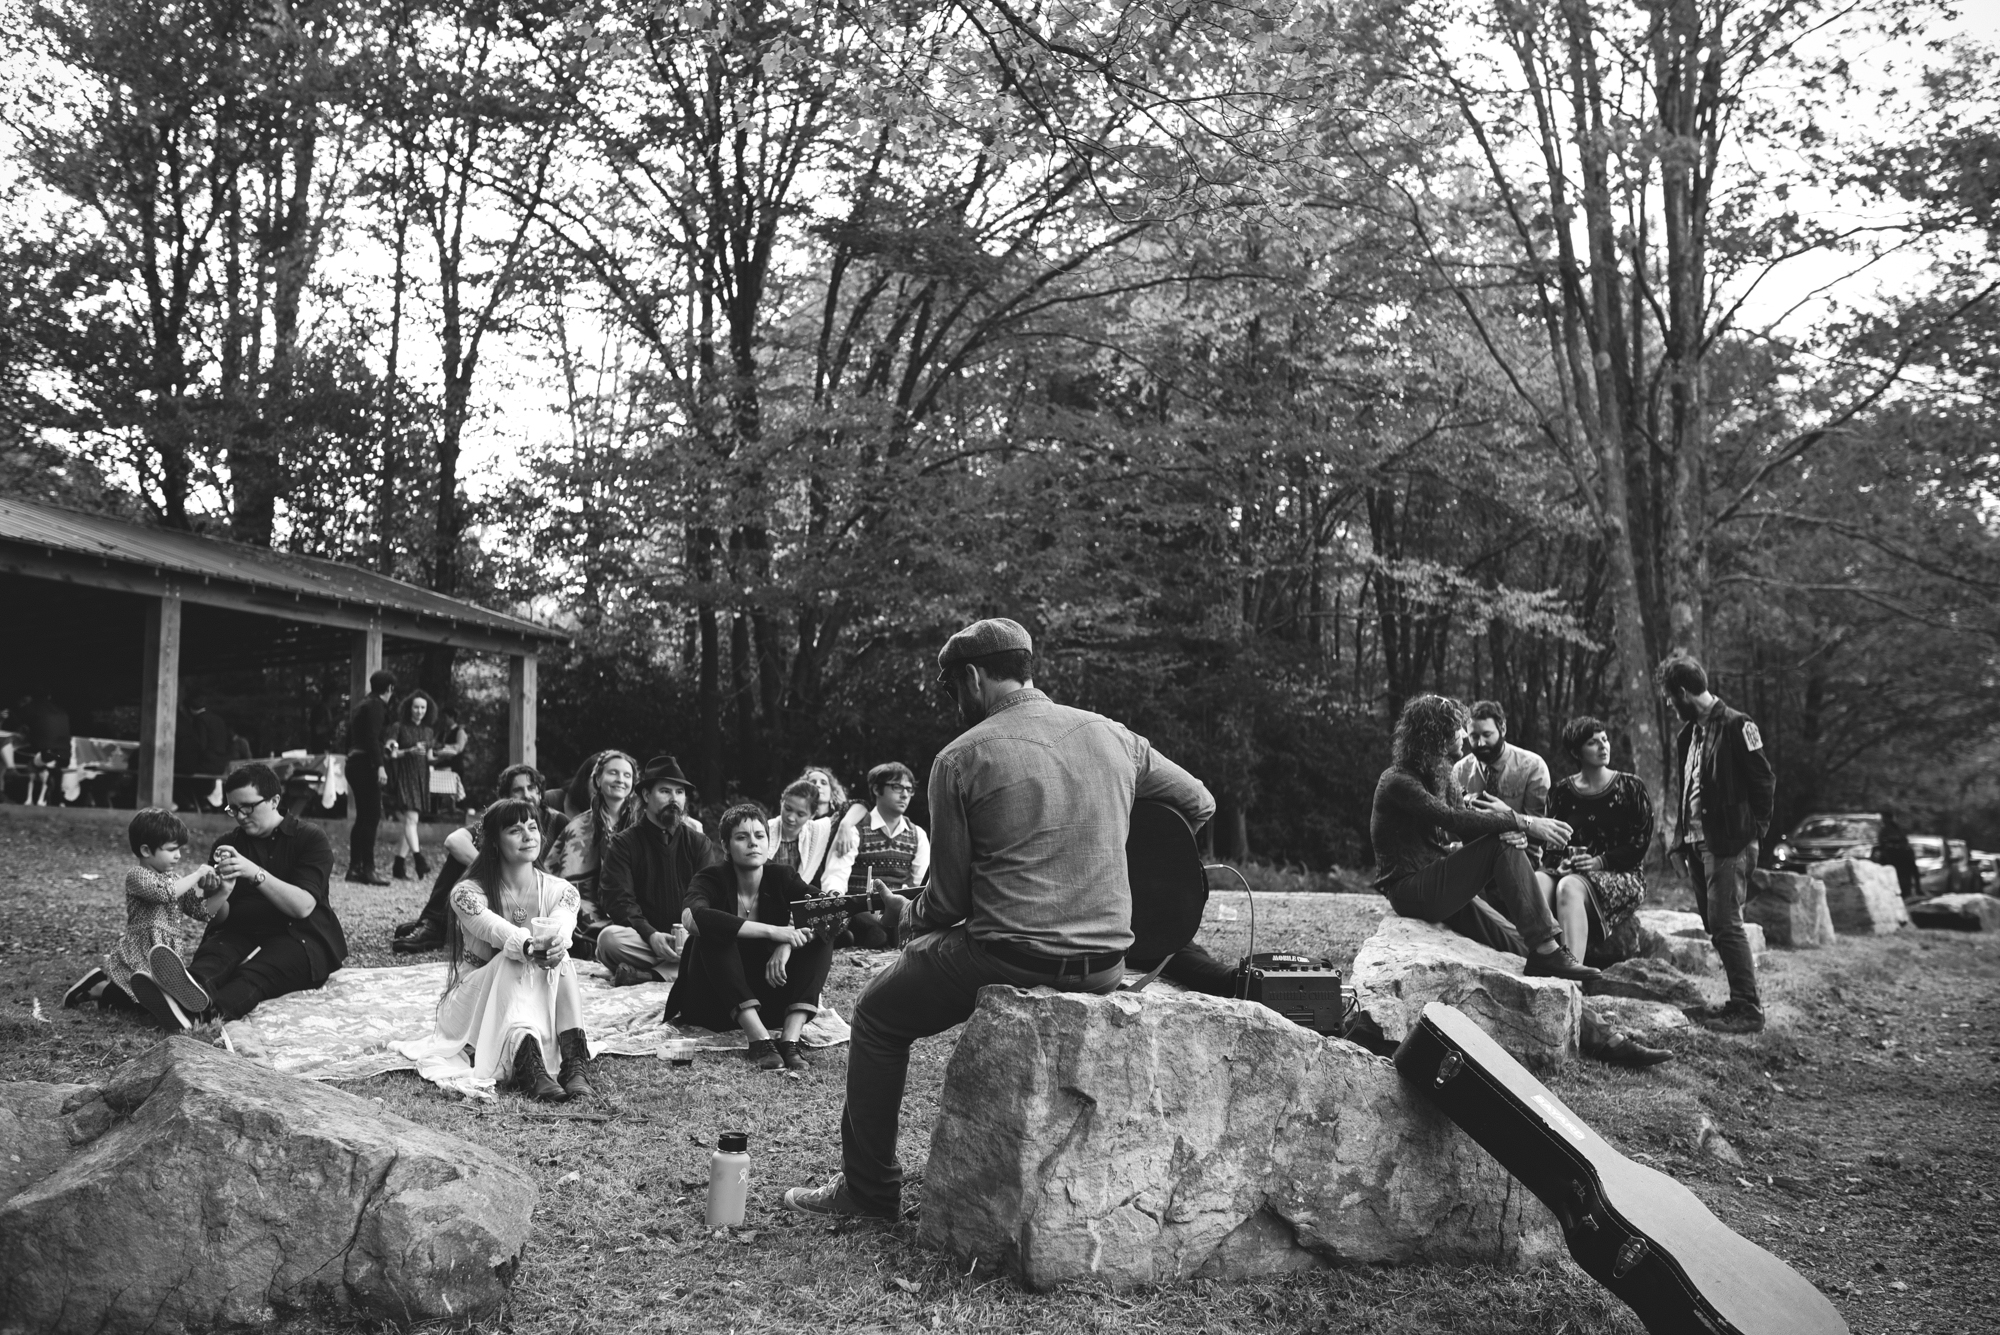 Mountain Wedding, Outdoors, Rustic, West Virginia, Maryland Wedding Photographer, DIY, Casual, friend playing guitar in front of guests, black and white photo